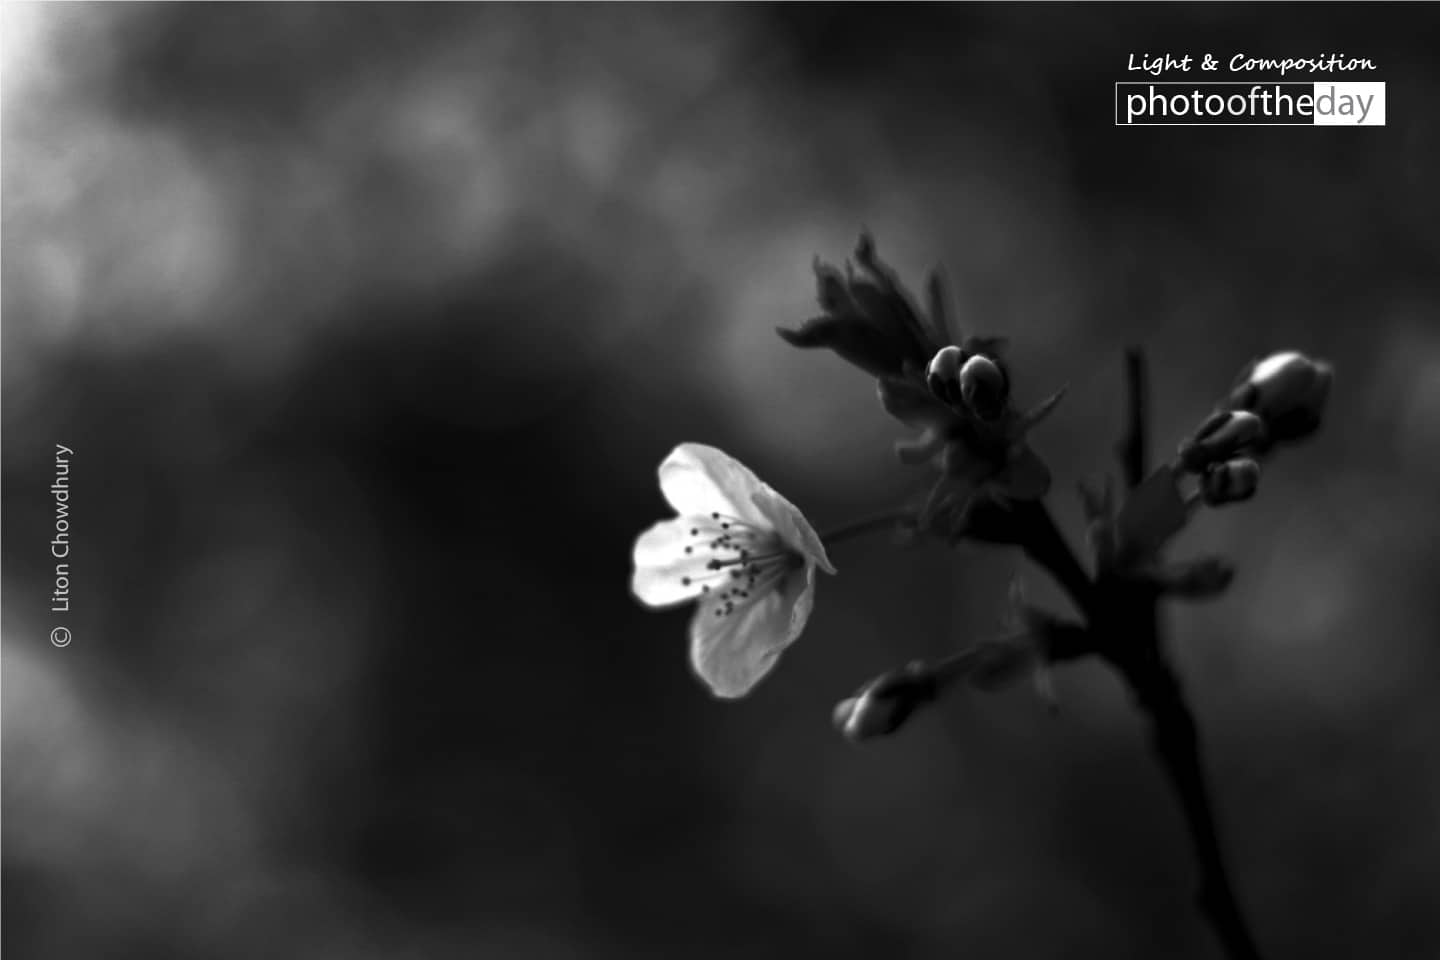 A Flower Story, by Liton Chowdhury